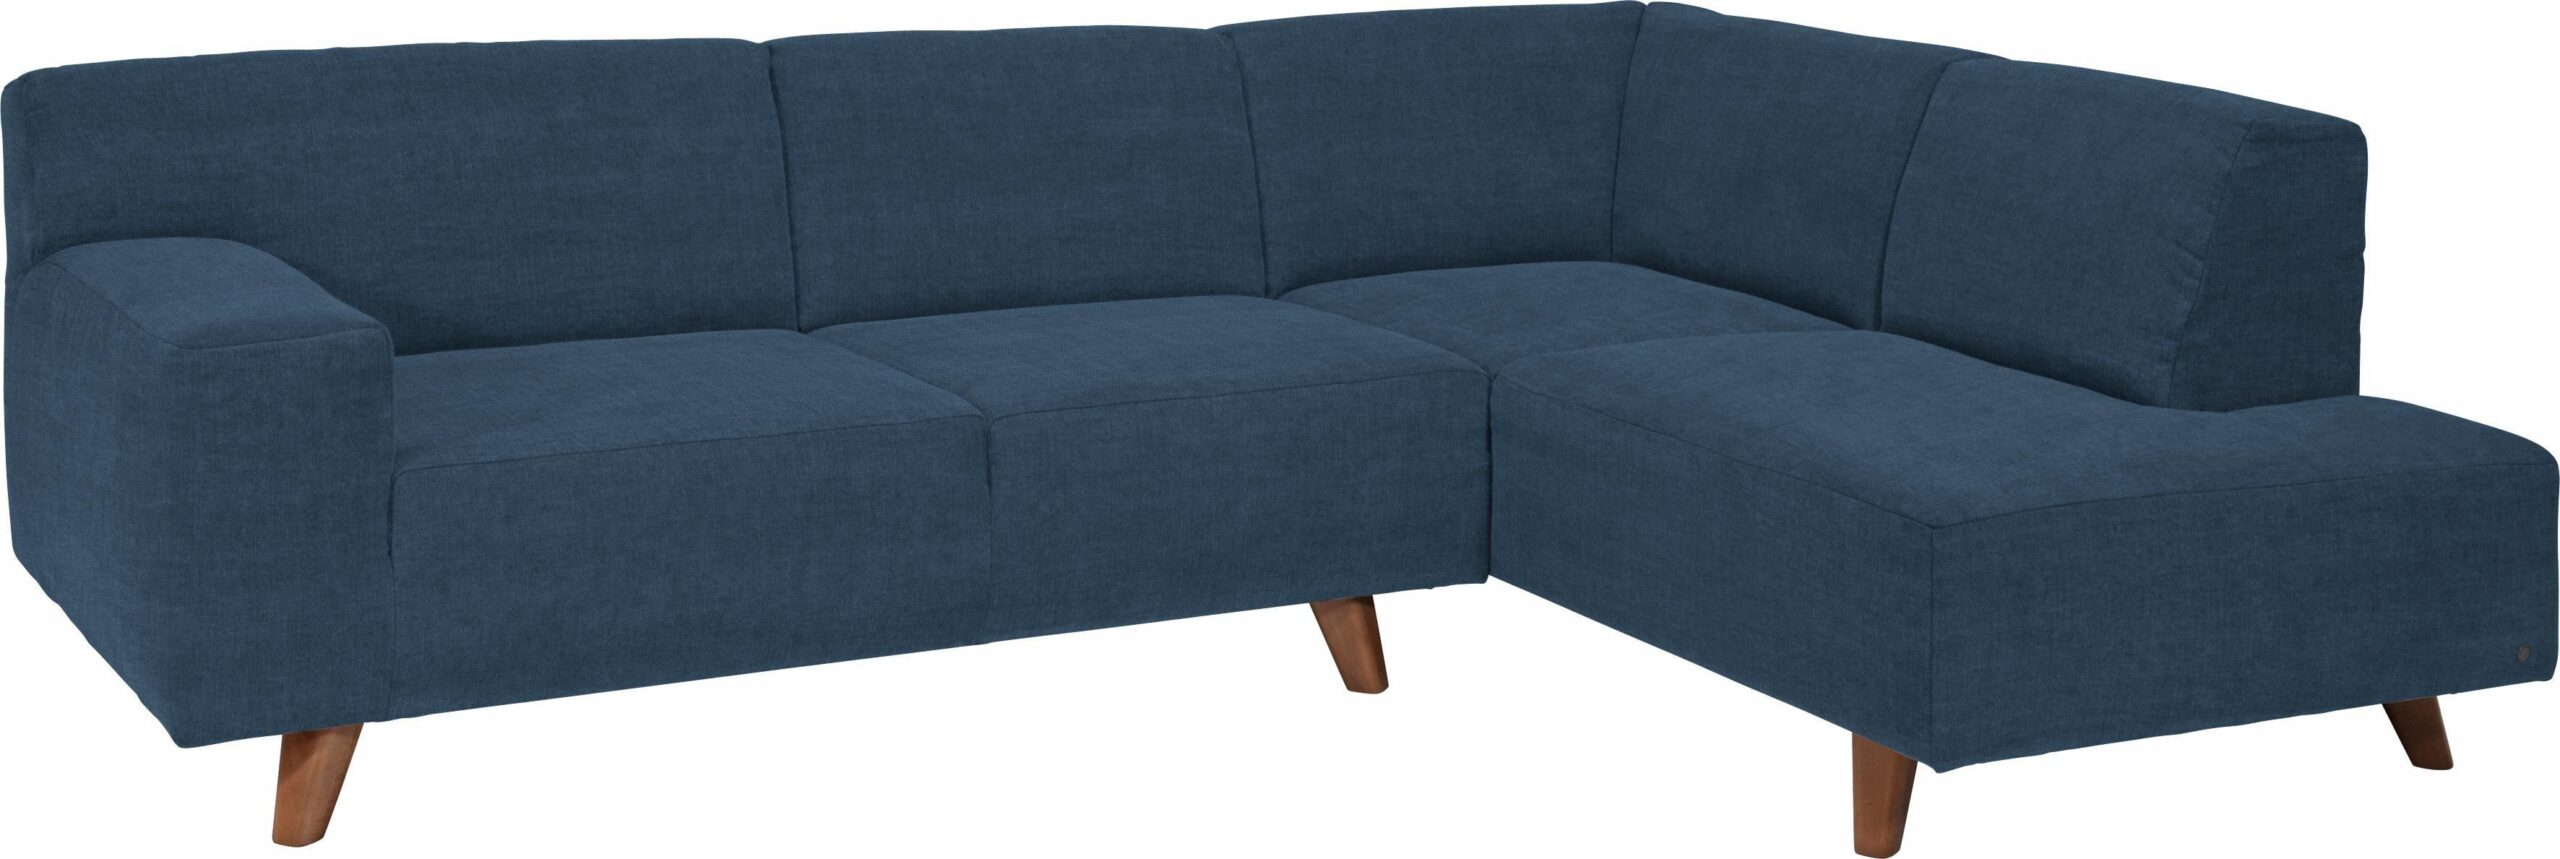 Full Size of Sofa Tom Tailor Nordic Chic Otto Heaven Style West Coast Big Casual S Couch Colors Elements Cube Pure Xl Inhofer Mit Elektrischer Sitztiefenverstellung Hülsta Sofa Sofa Tom Tailor